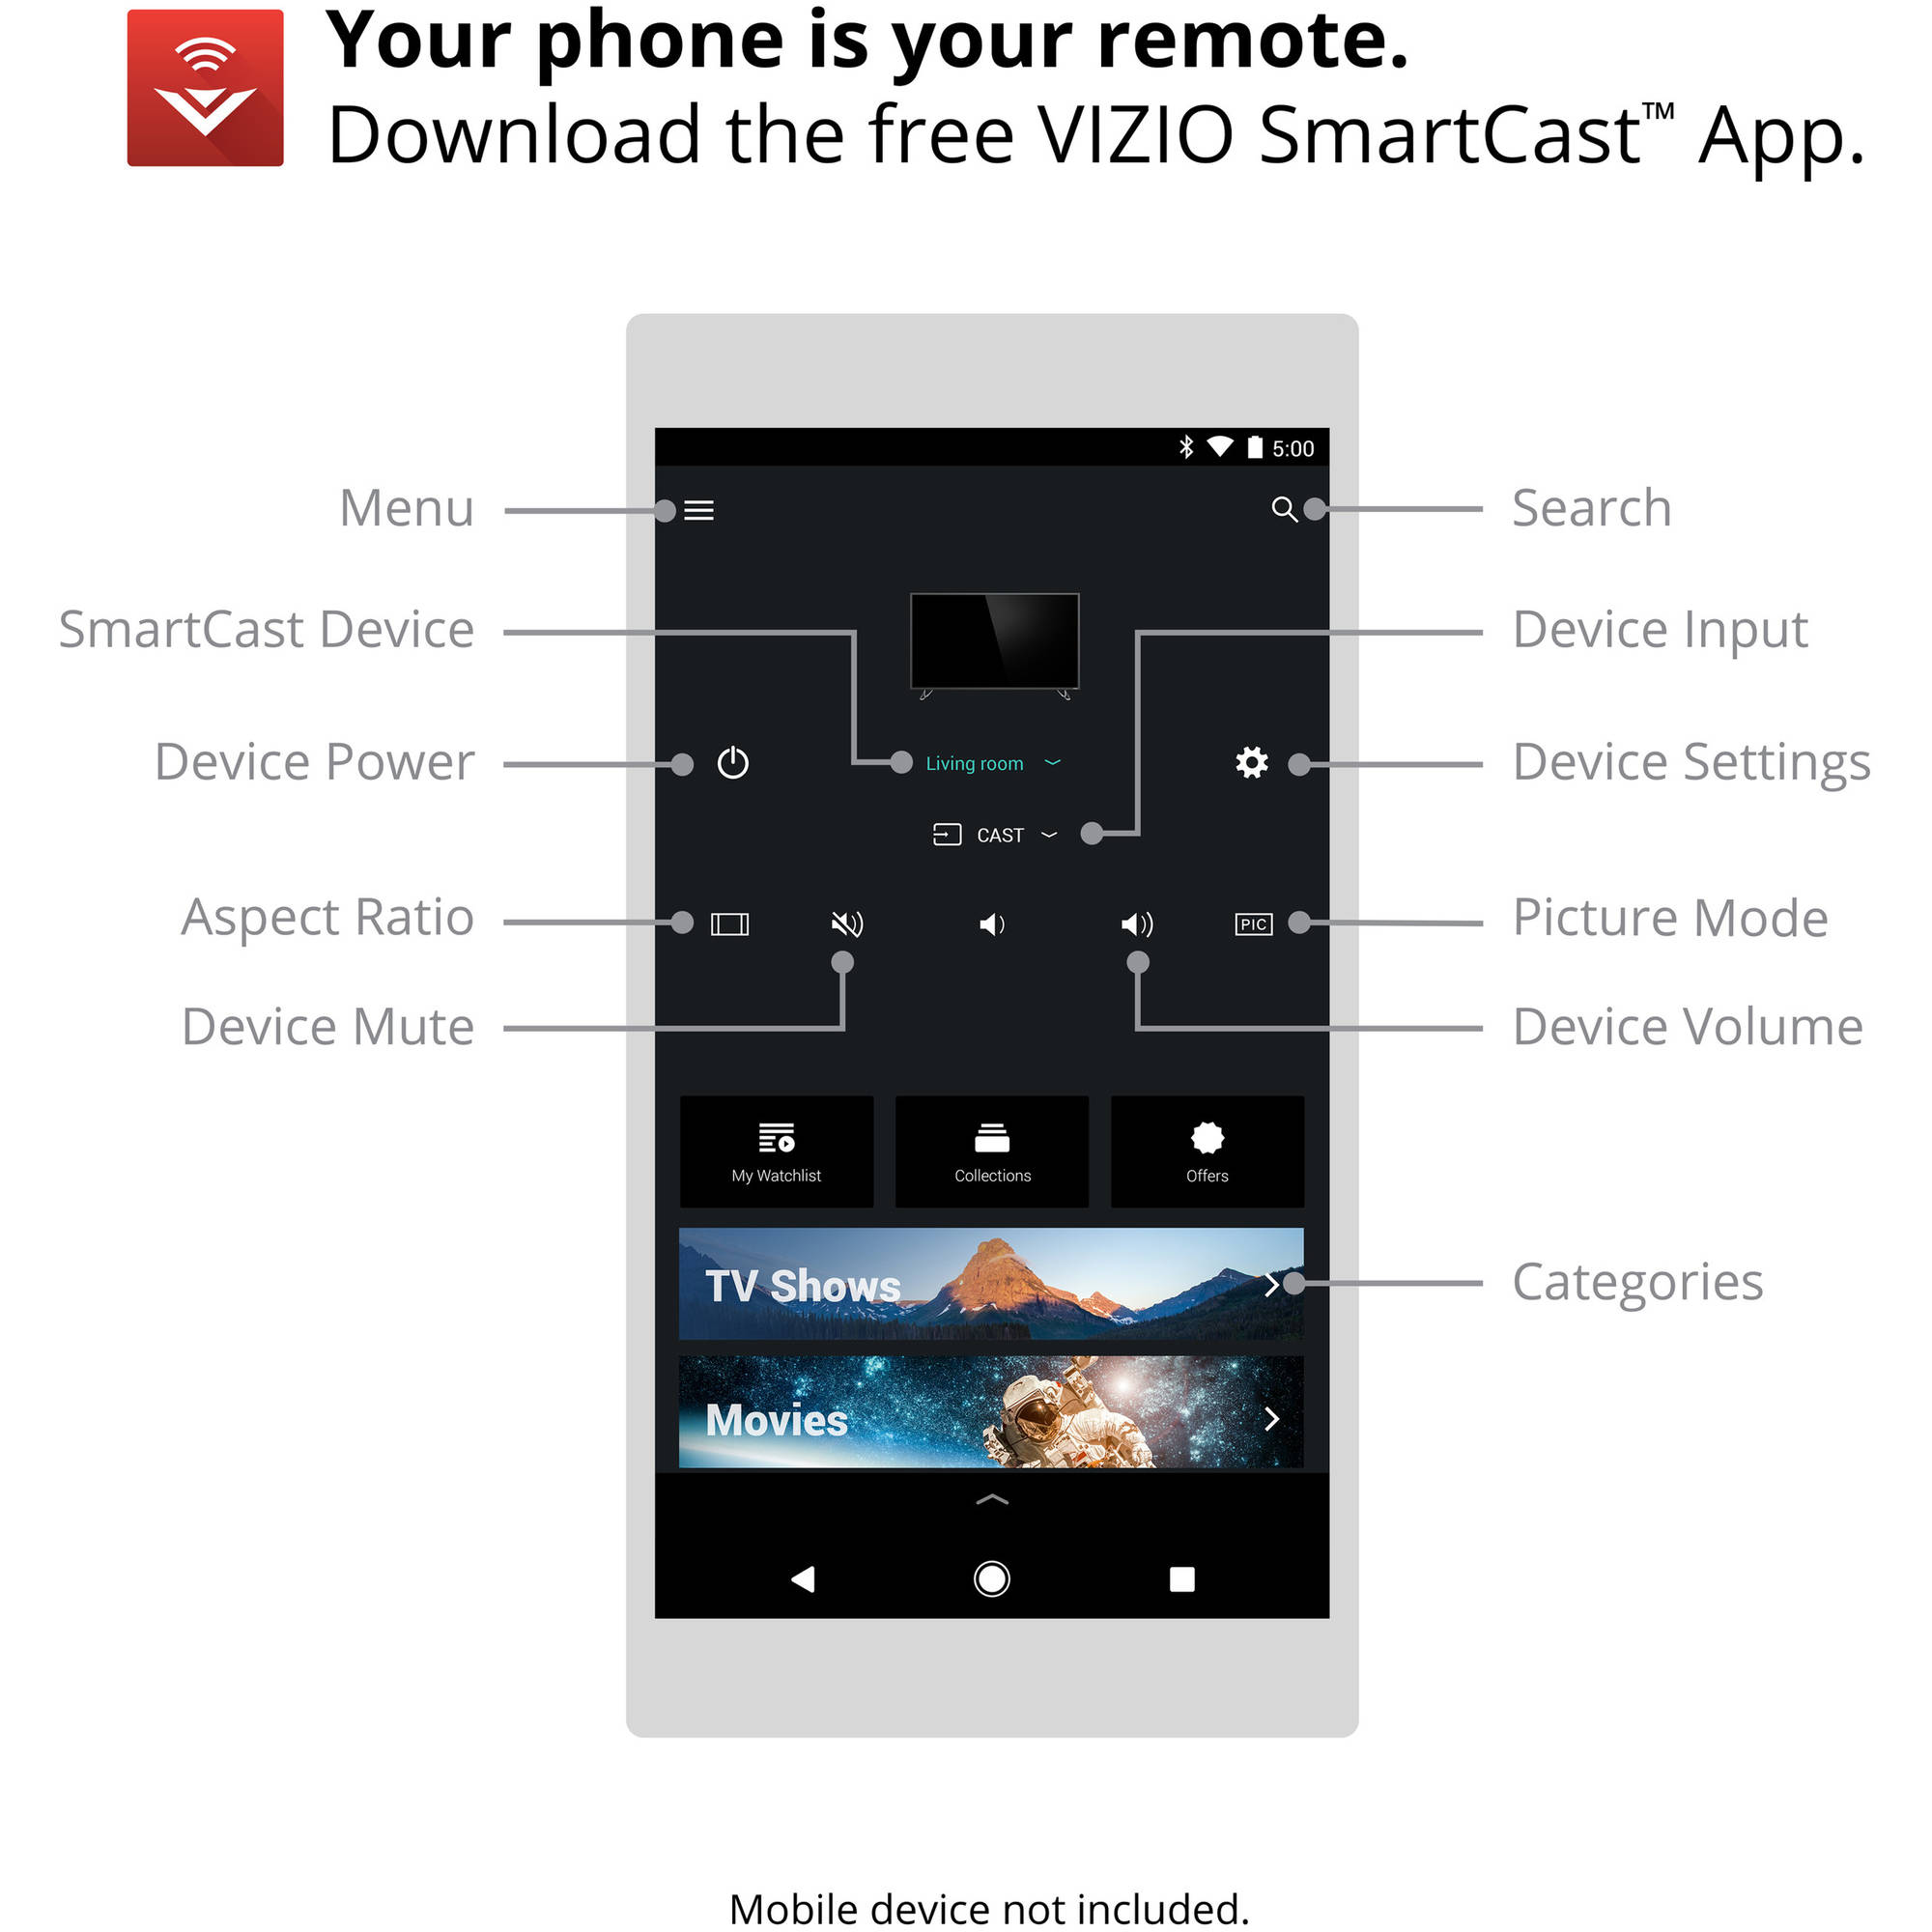 how to connect mobile device to vizio smart tv